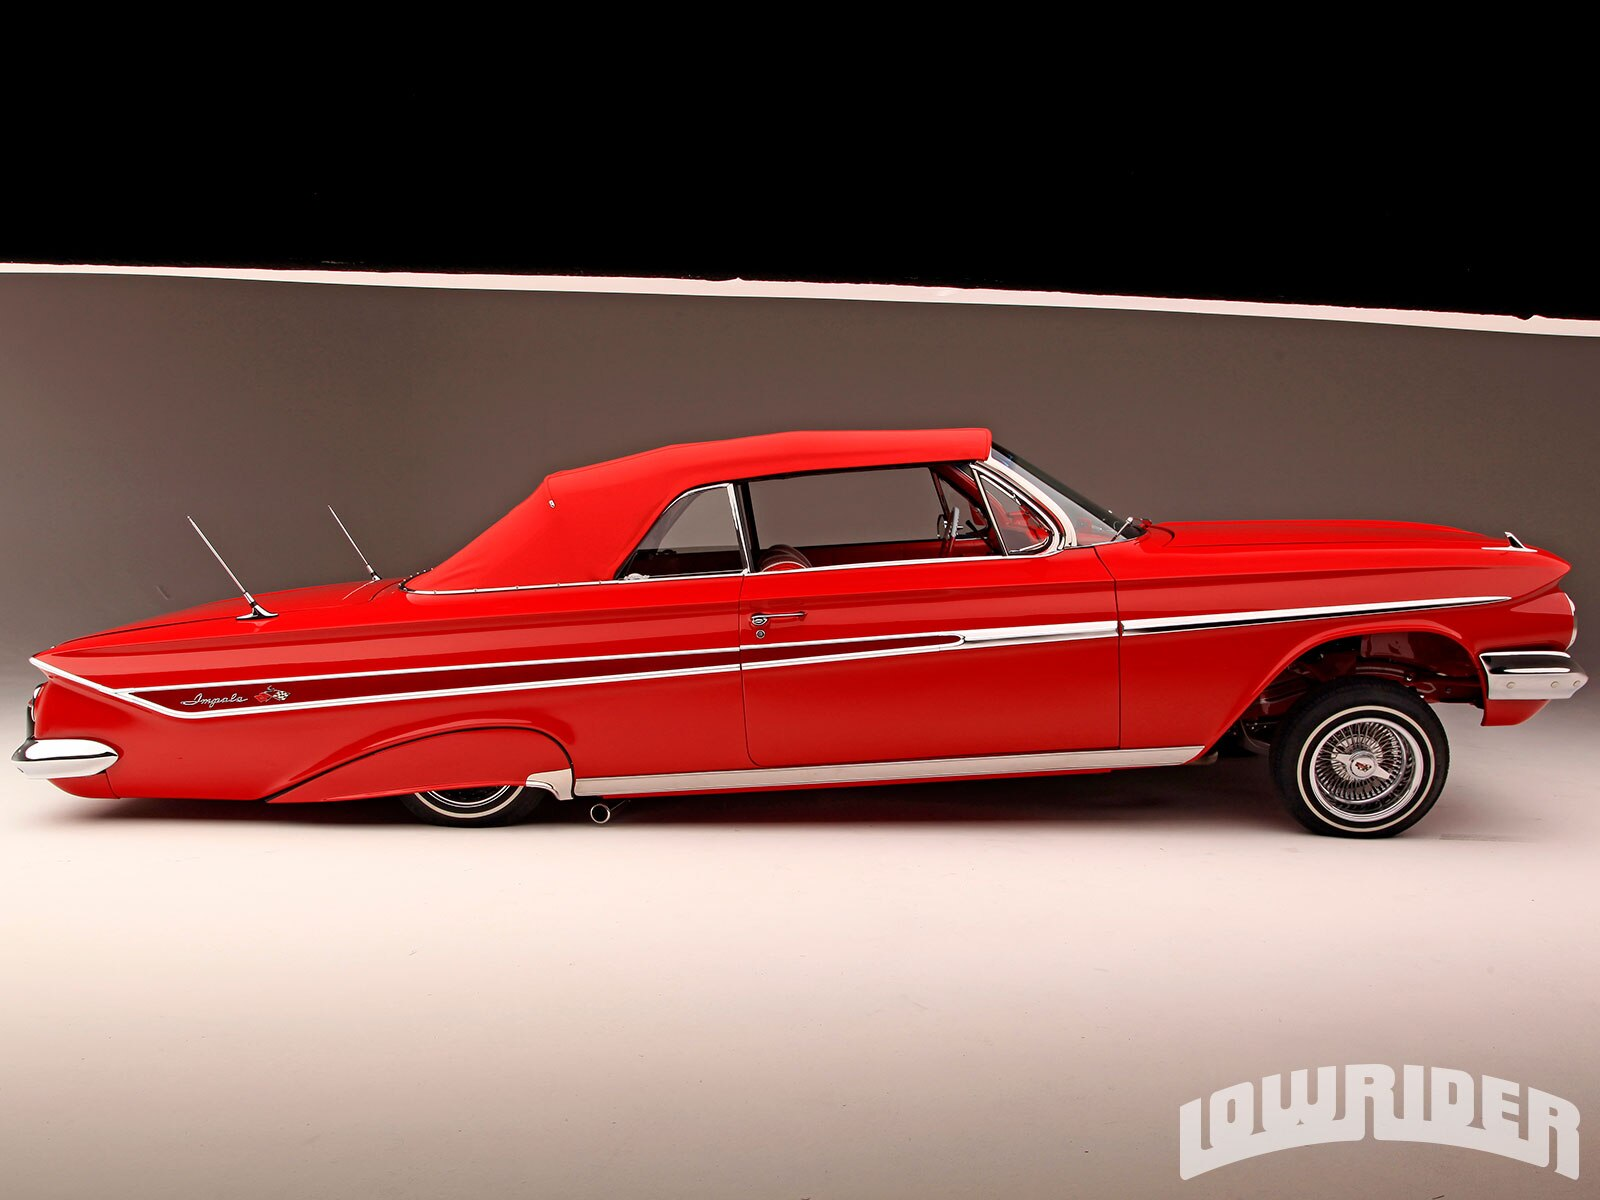 1961-chevrolet-impala-right-side-view1